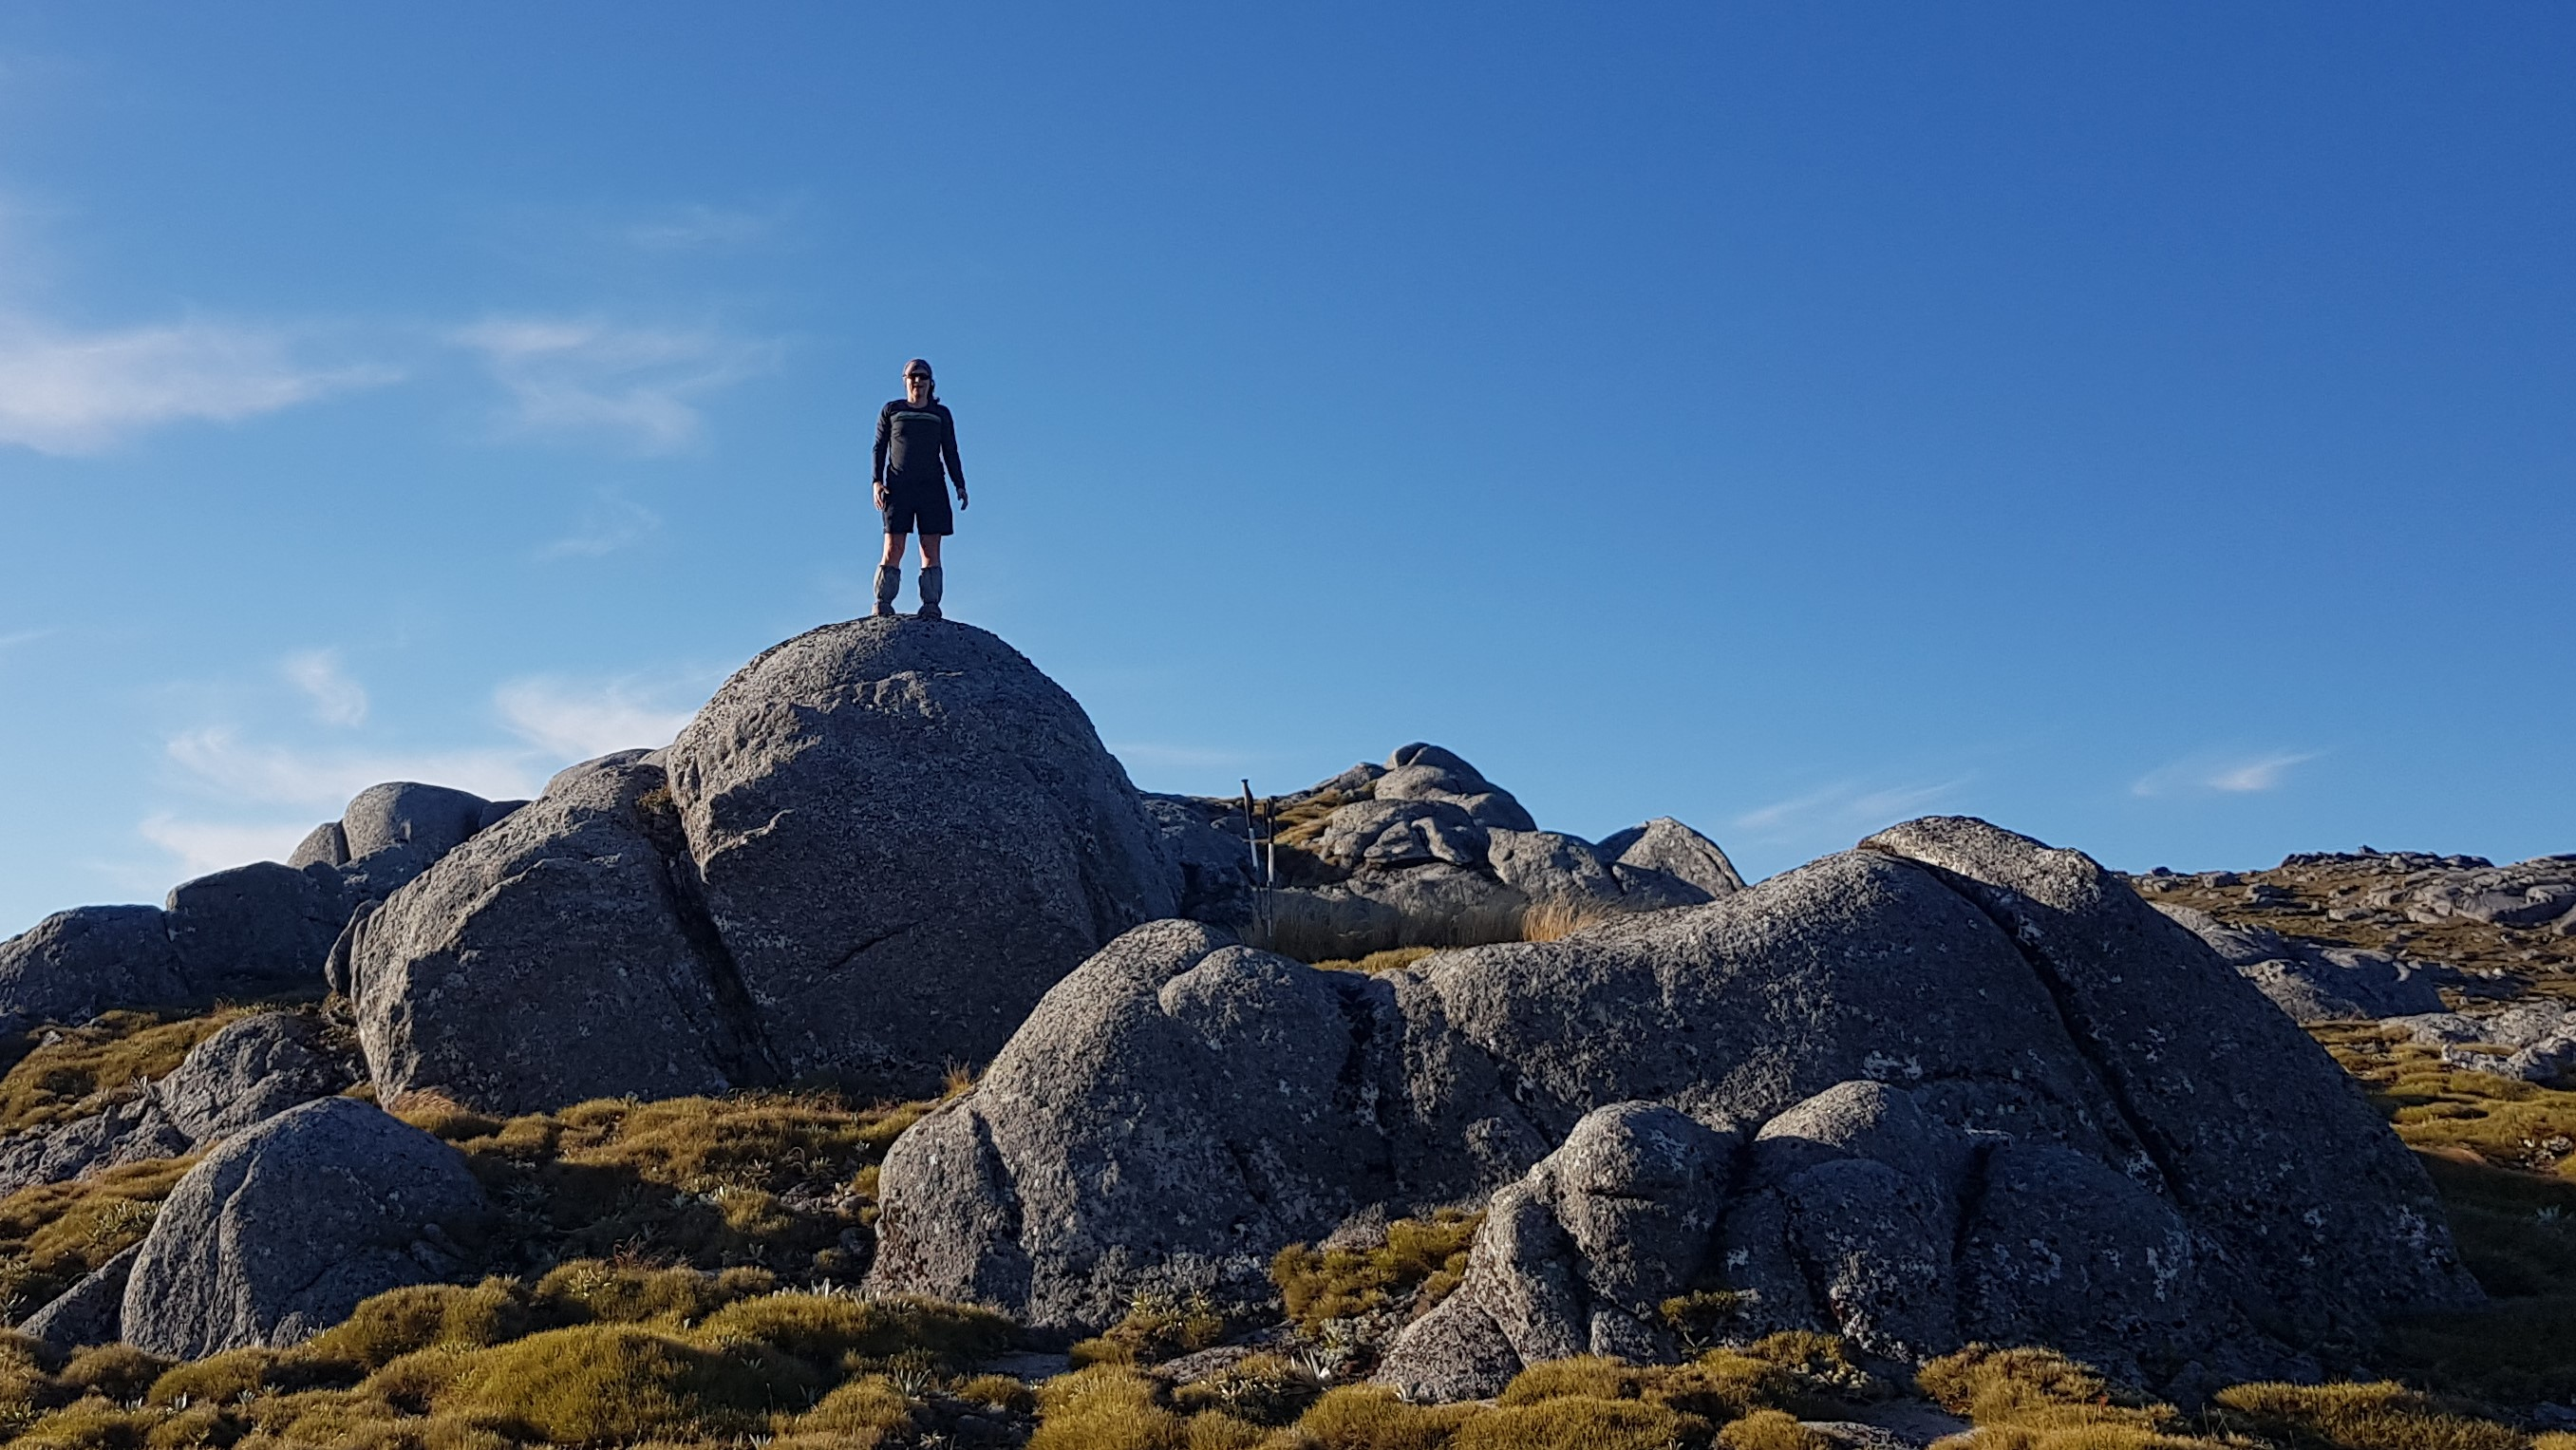 Climbing boulders on Buckland Peaks